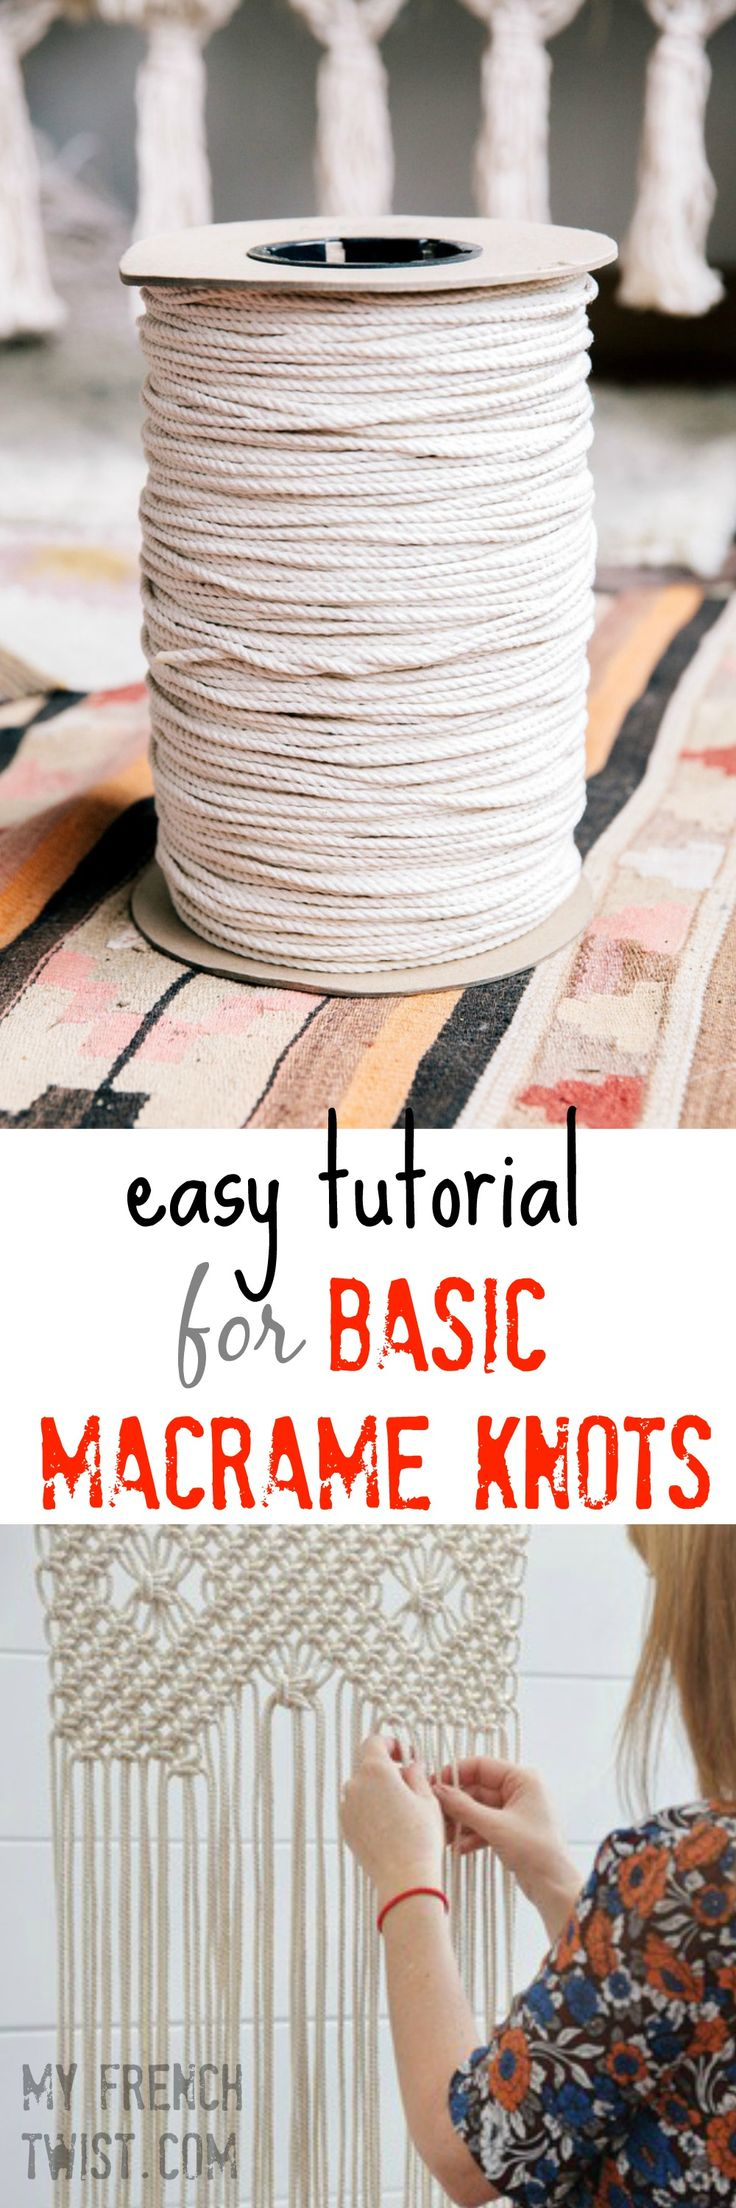 Want a macrame tutorial that is EASY? try this one at myfrenchtwist.com www.myfr...